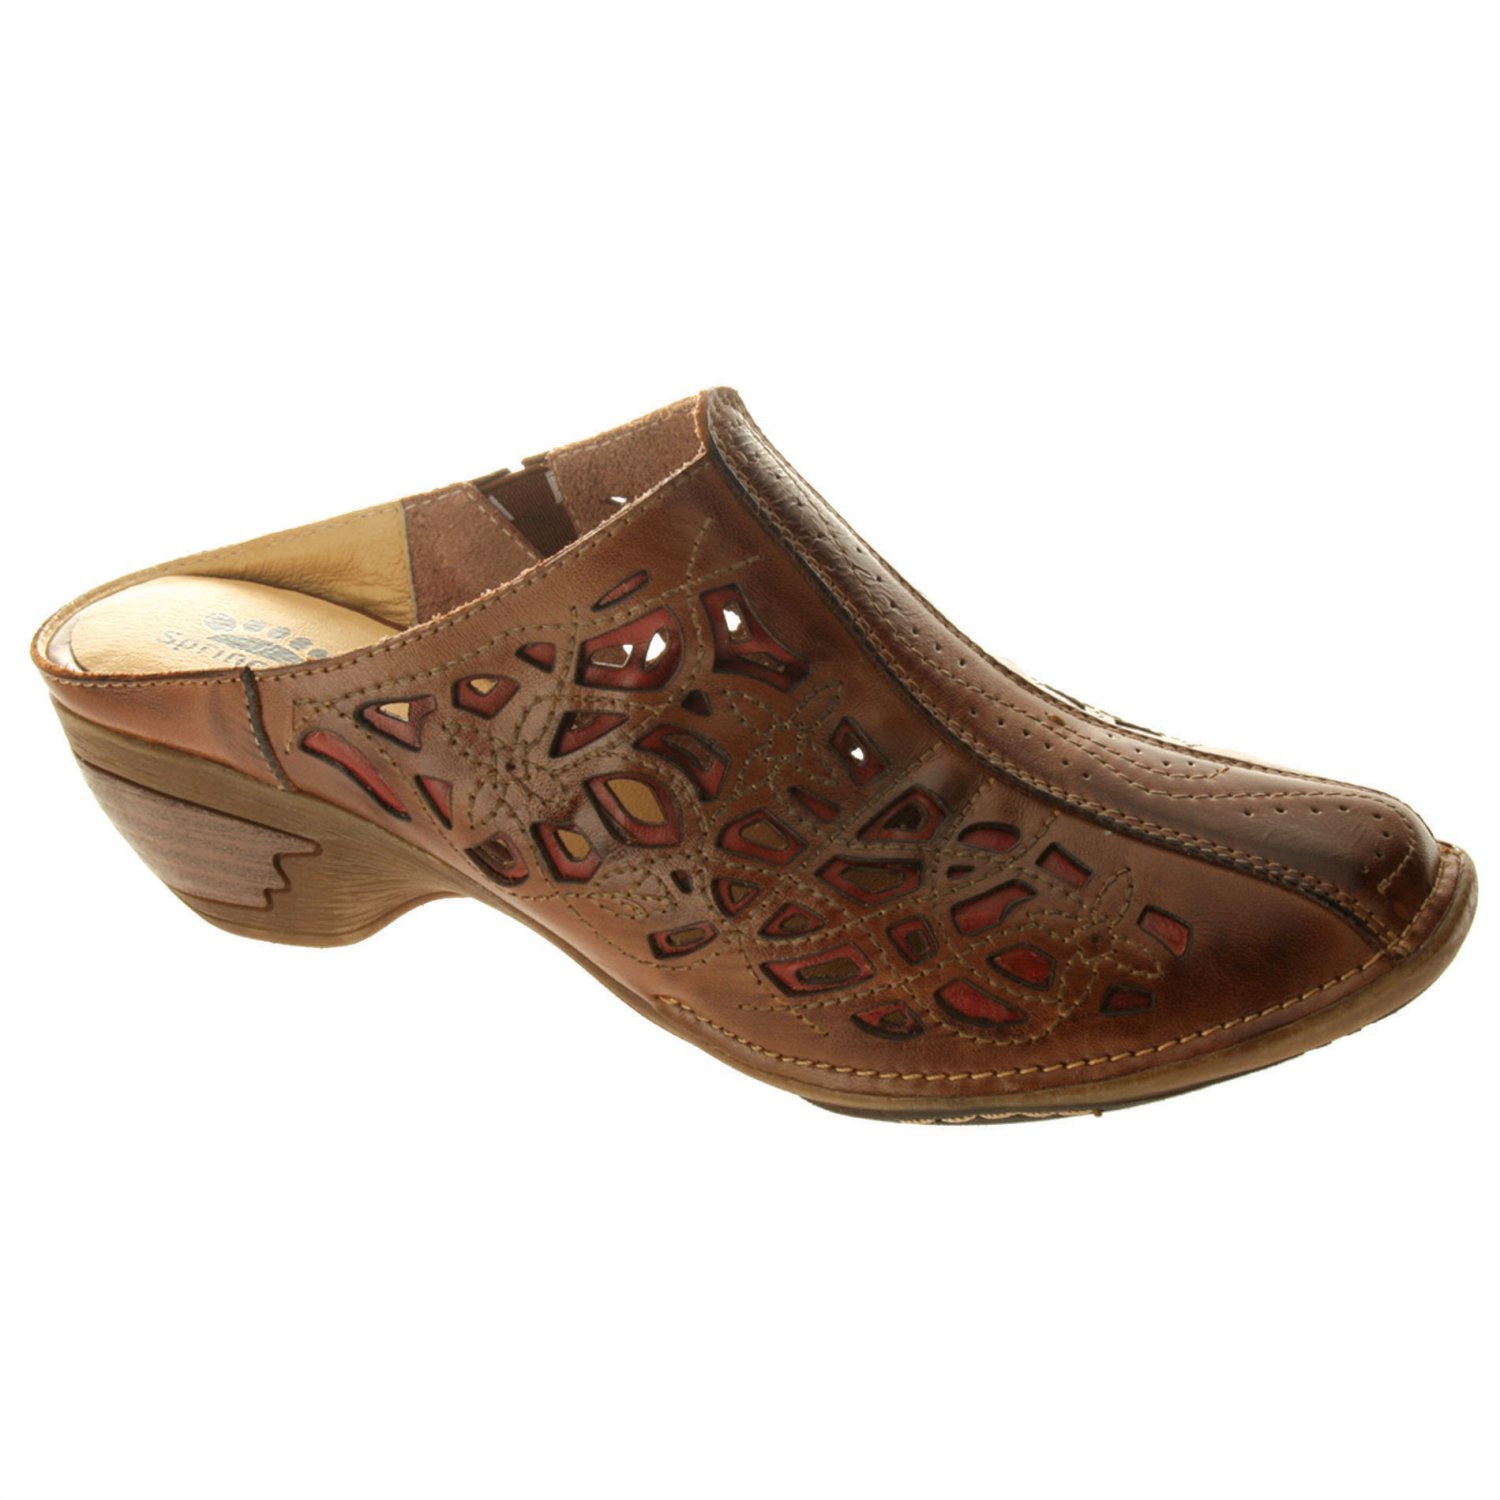 Spring Step BOLIVIA Sandals Shoes All Sizes & Colors $